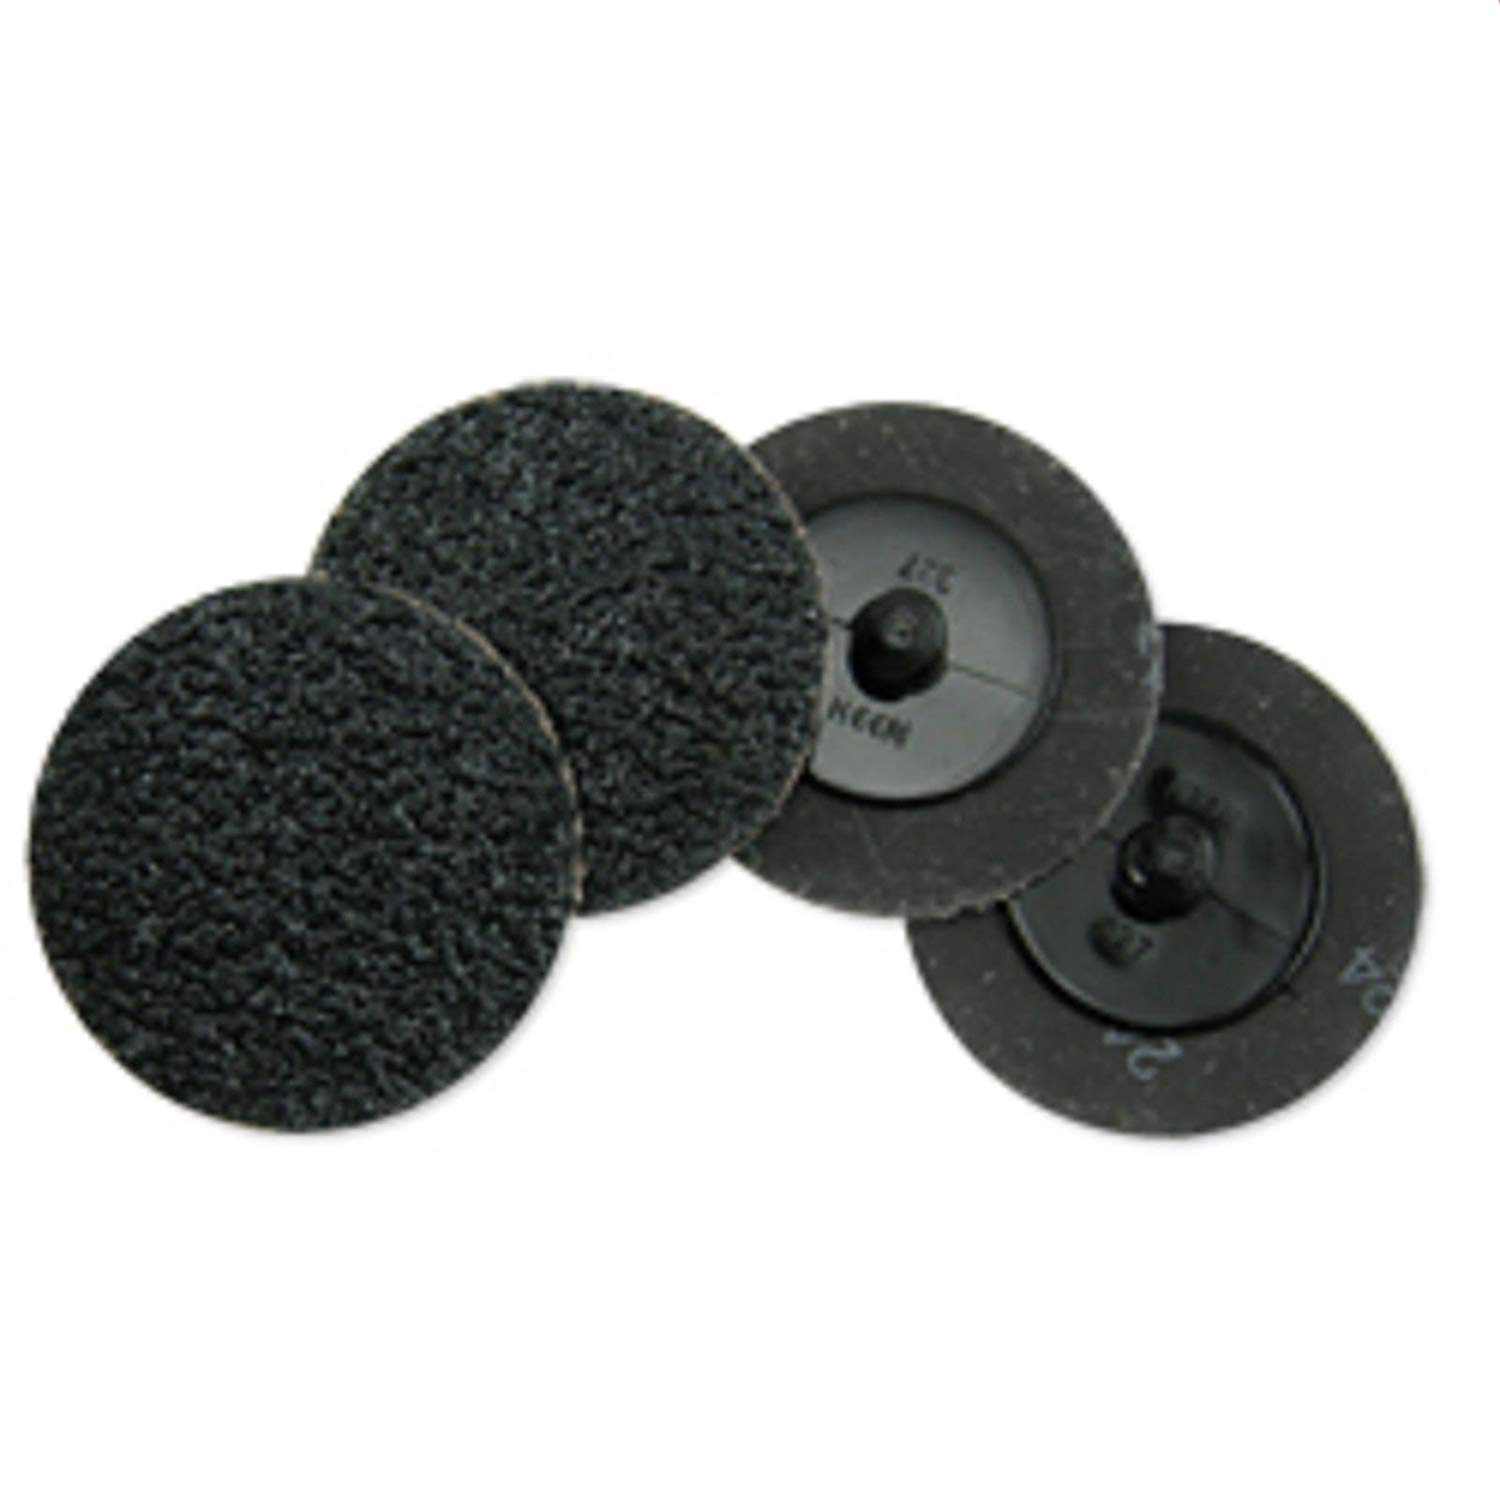 "ESKALEX>>50 Silicon Carbide Sanding Discs 3"" 24 Grit Grinding Sandpaper Wheel And 50 New Silicon Carbide Sanding Discs Picture for reference only 3"" 24 Grit Silicon carbide resin bonded"